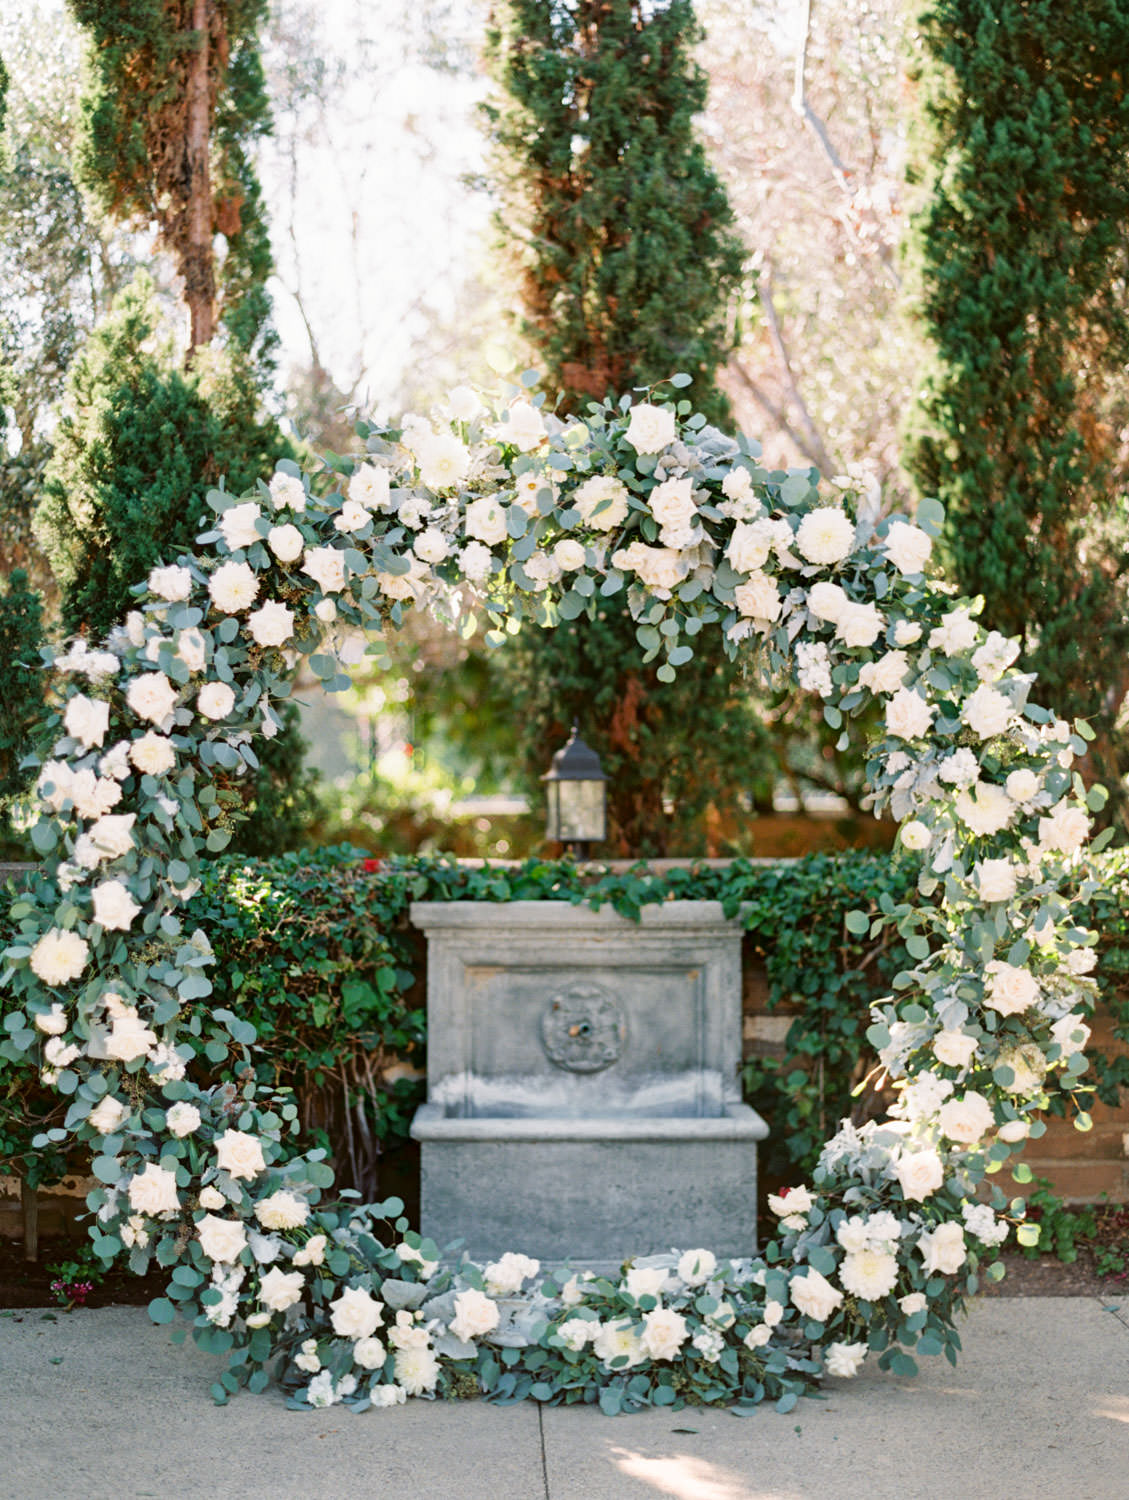 Circular ceremony arch with silver dollar eucalyptus, white dahlias and roses in front of a well and cypress trees. Olive Lawn ceremony. Estancia La Jolla wedding shot on film by Cavin Elizabeth Photography